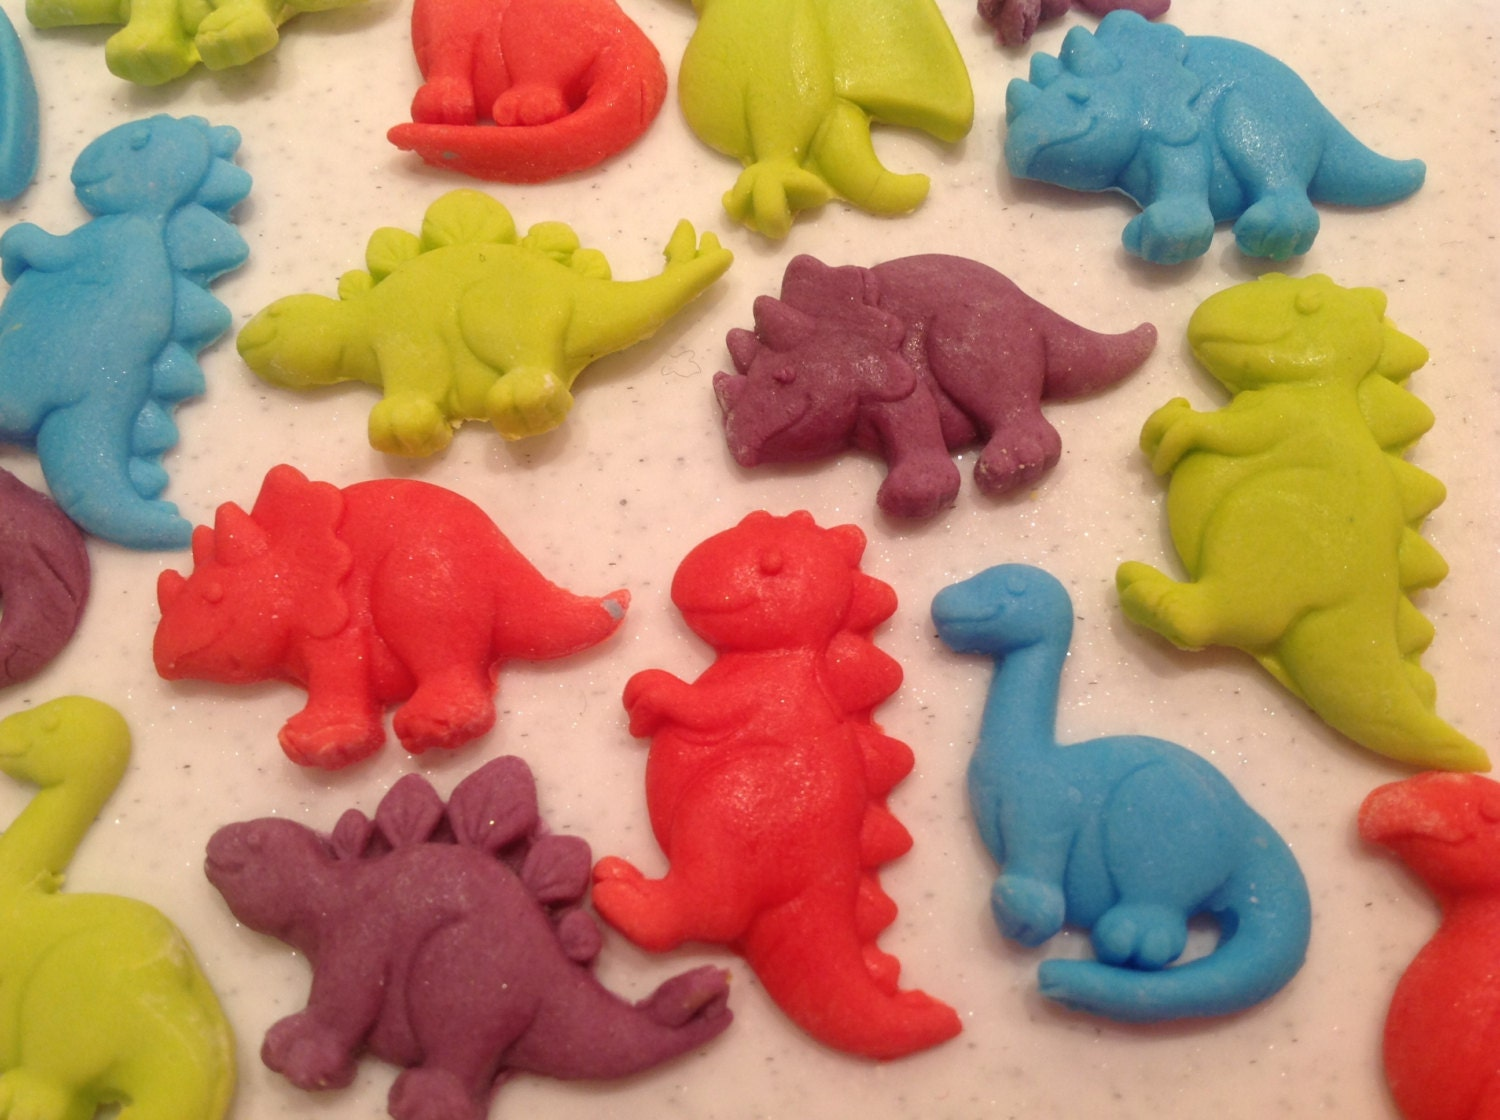 Dinosaur Cake Decorations Uk : 12 edible sugarpaste dinosaurs. Childrens party cupcake